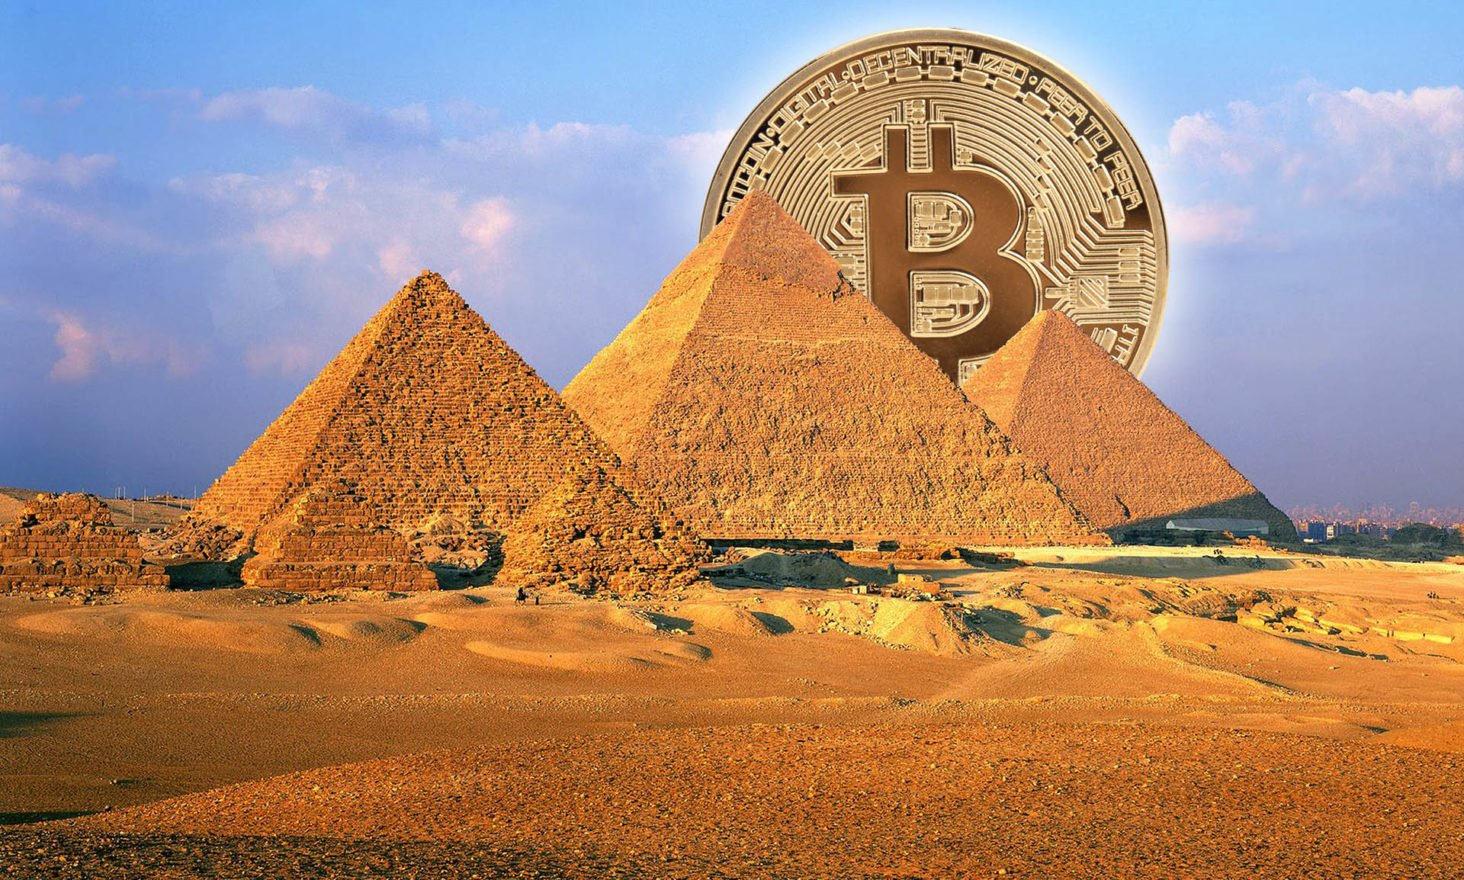 First Bitcoin Exchange in Egypt Set to Begin Trading This Month